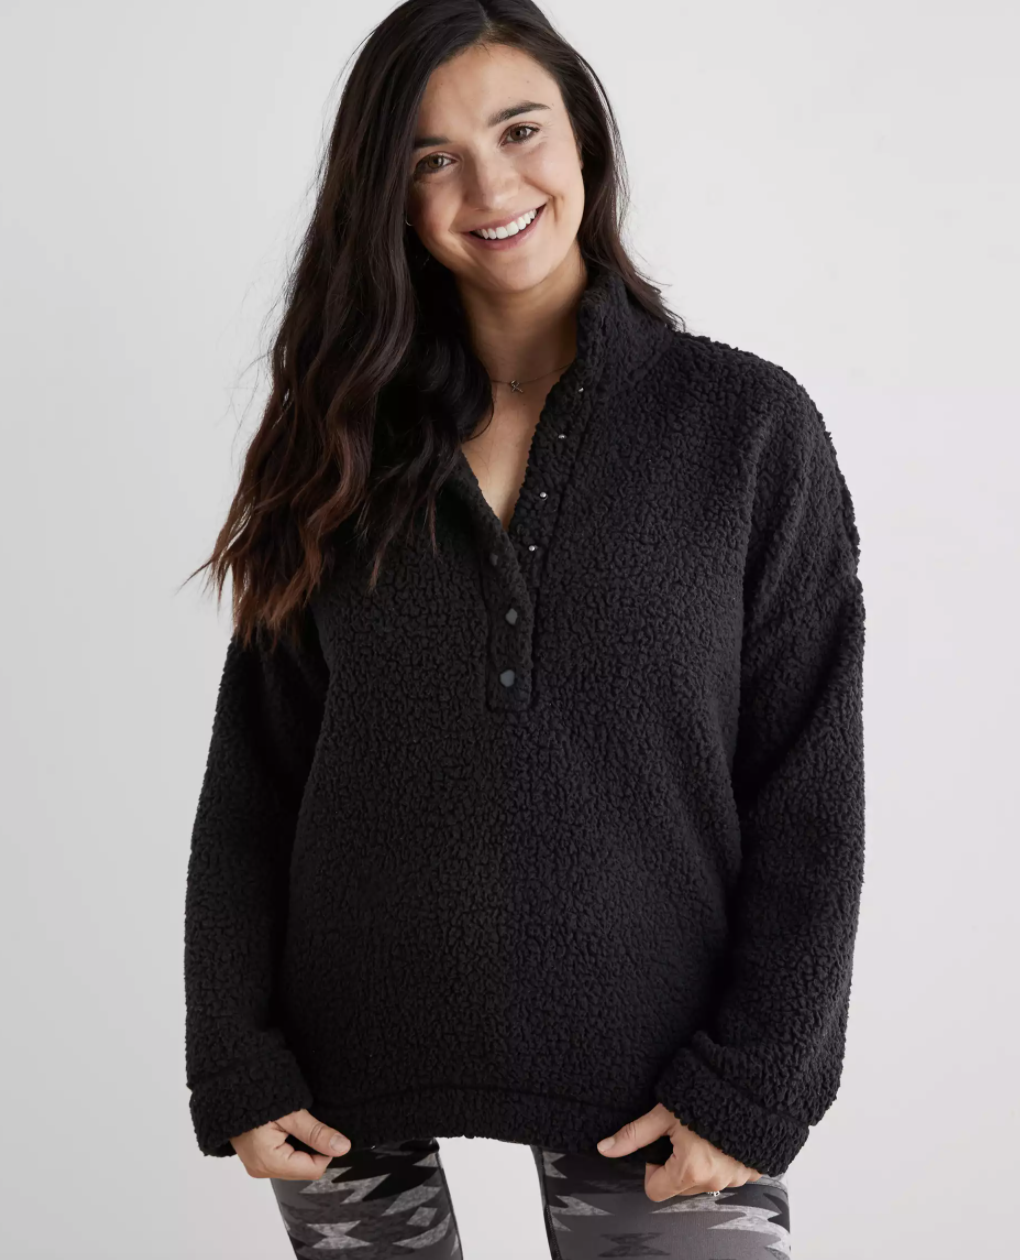 a model in the fuzzy black pullover